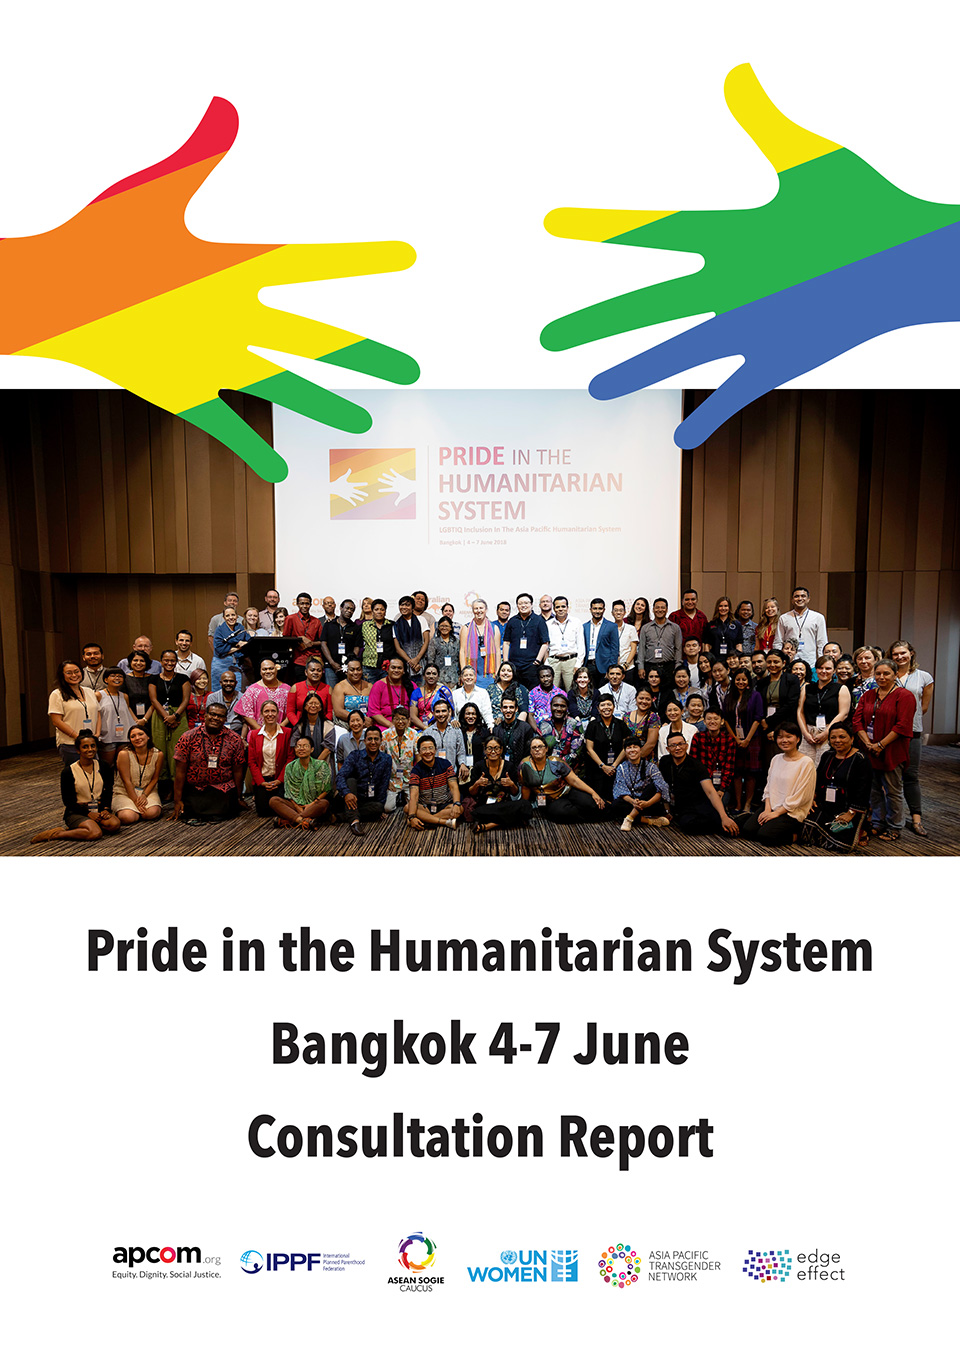 Pride in the Humanitarian System Consultation Report